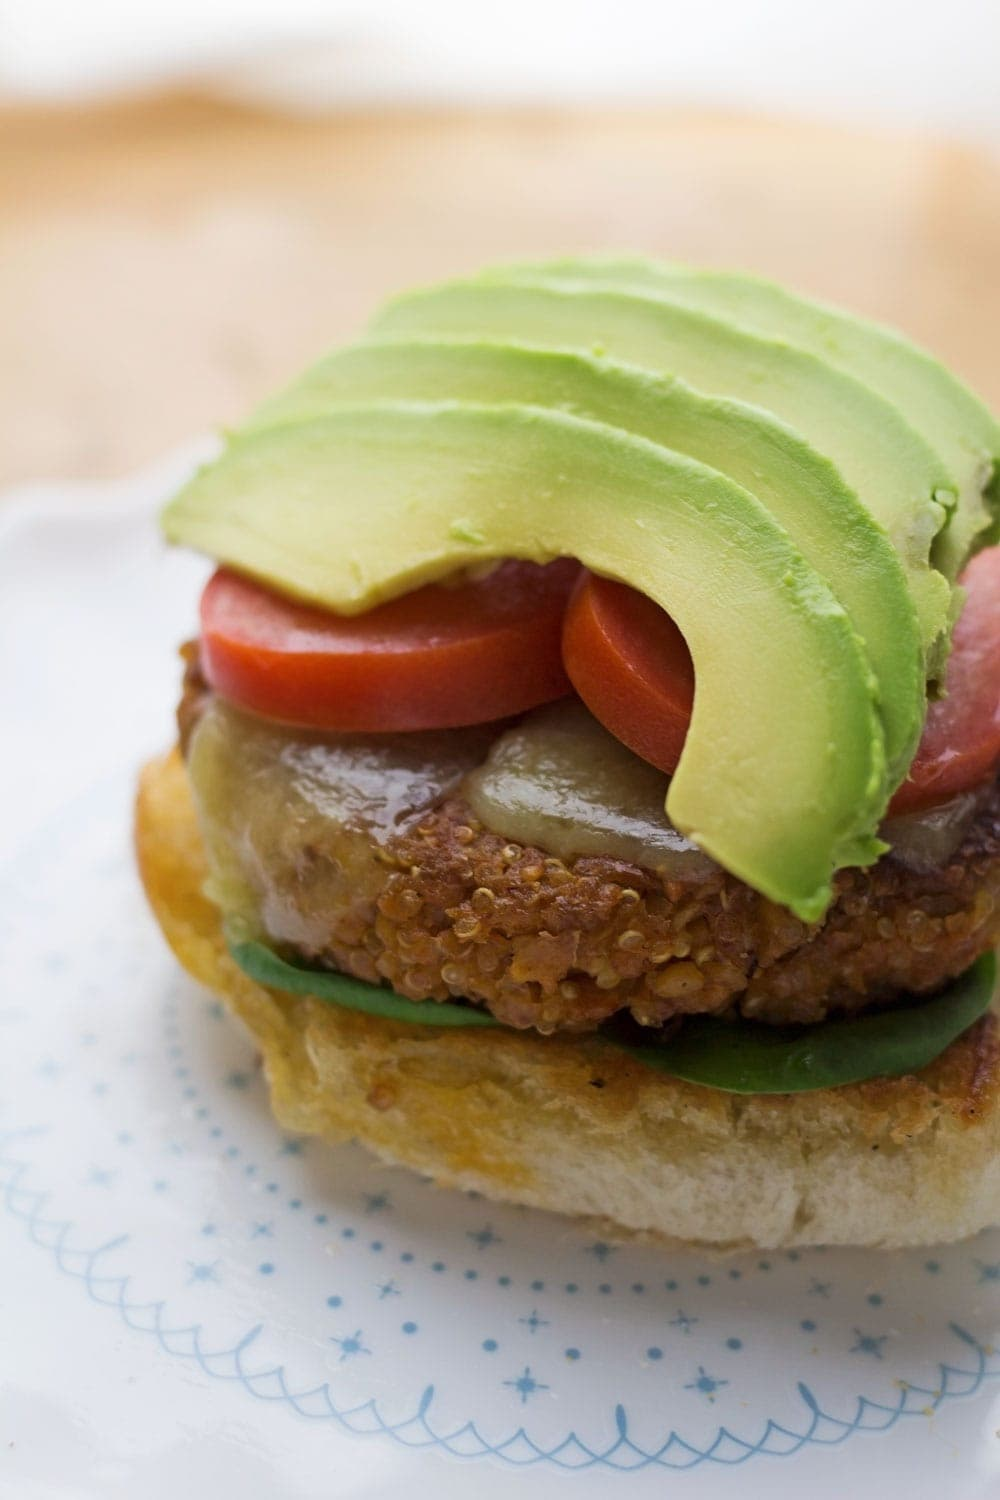 These chickpea quinoa veggie burgers are the perfect summer treat. Even meat lovers will adore these healthy, filling burgers.